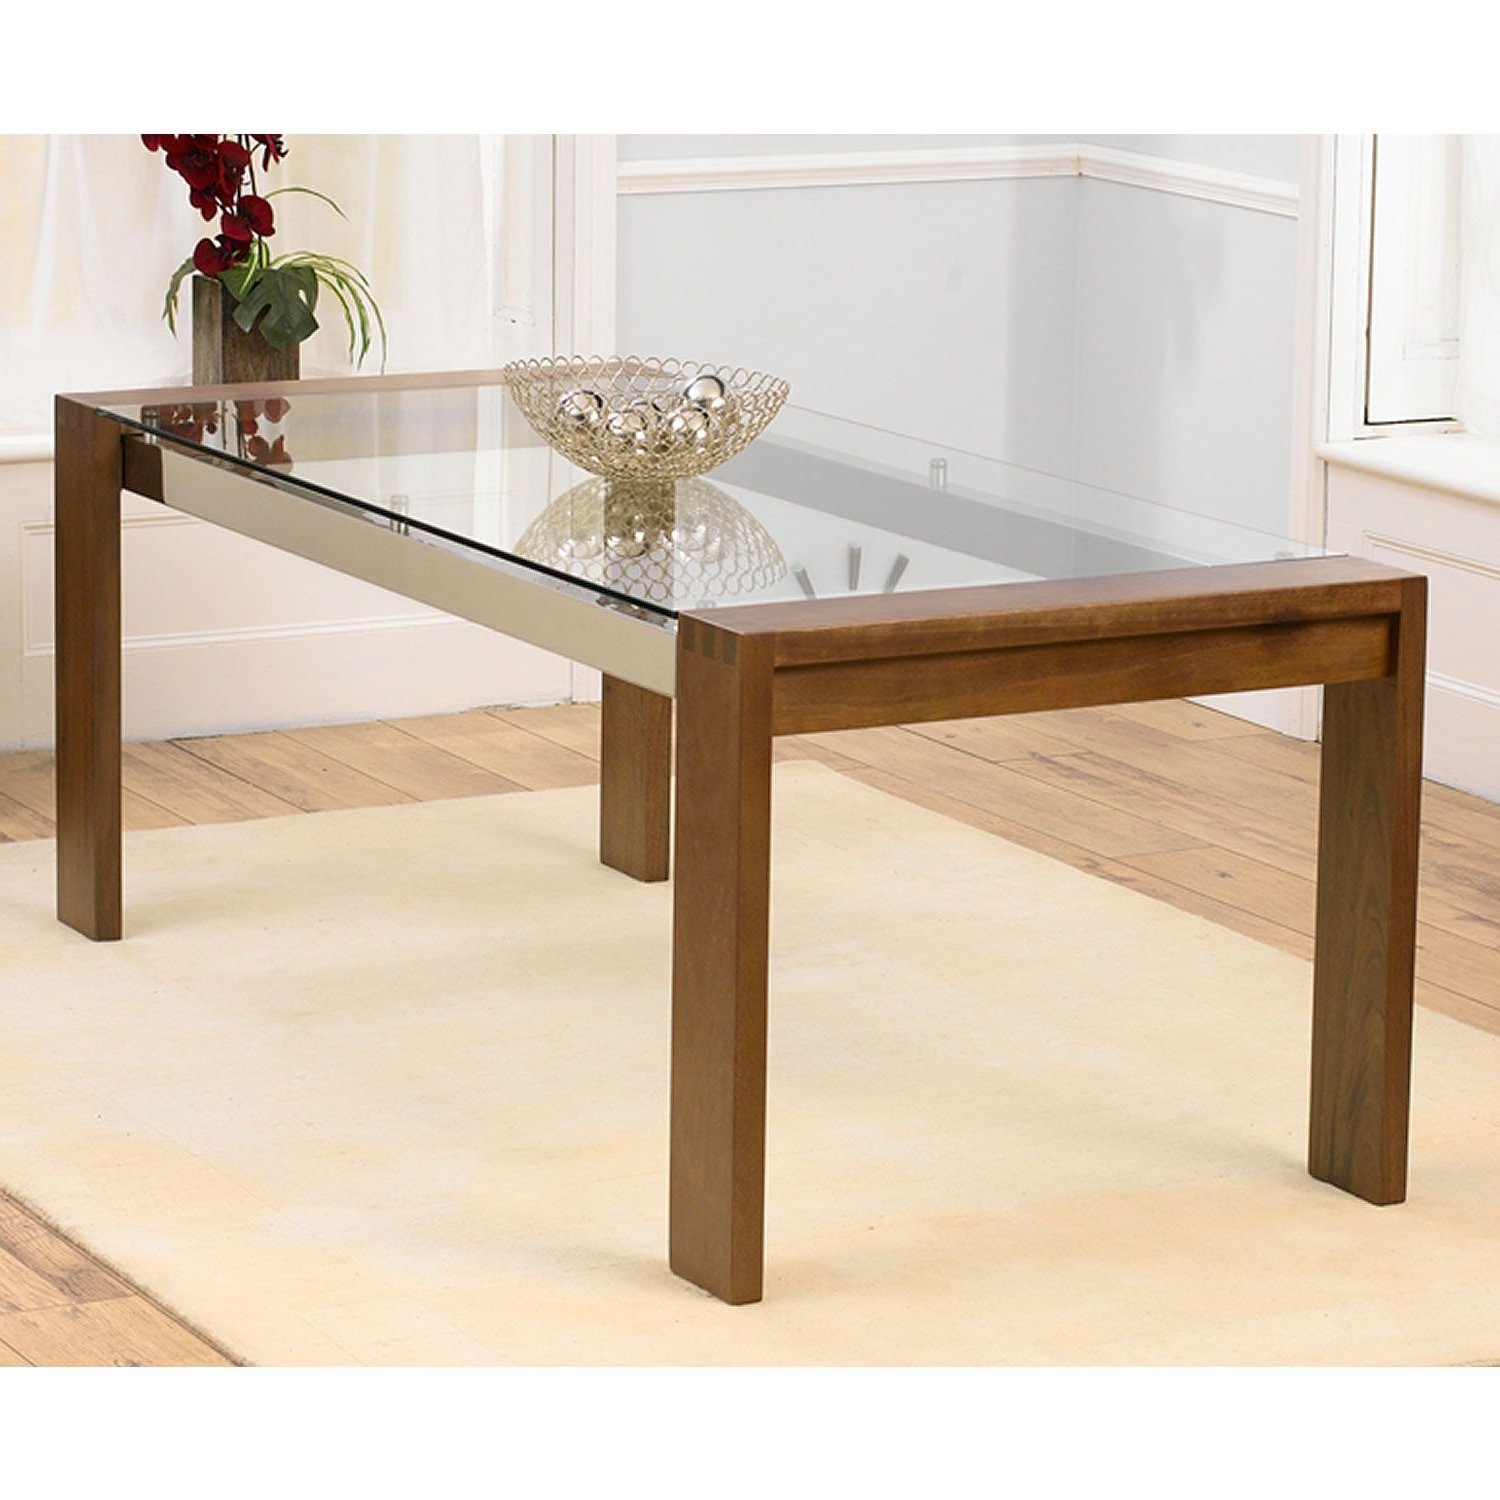 Glass Dining Tables With Wooden Legs In Well Known Image Result For Wooden Legs Glass Table Top (Gallery 2 of 25)